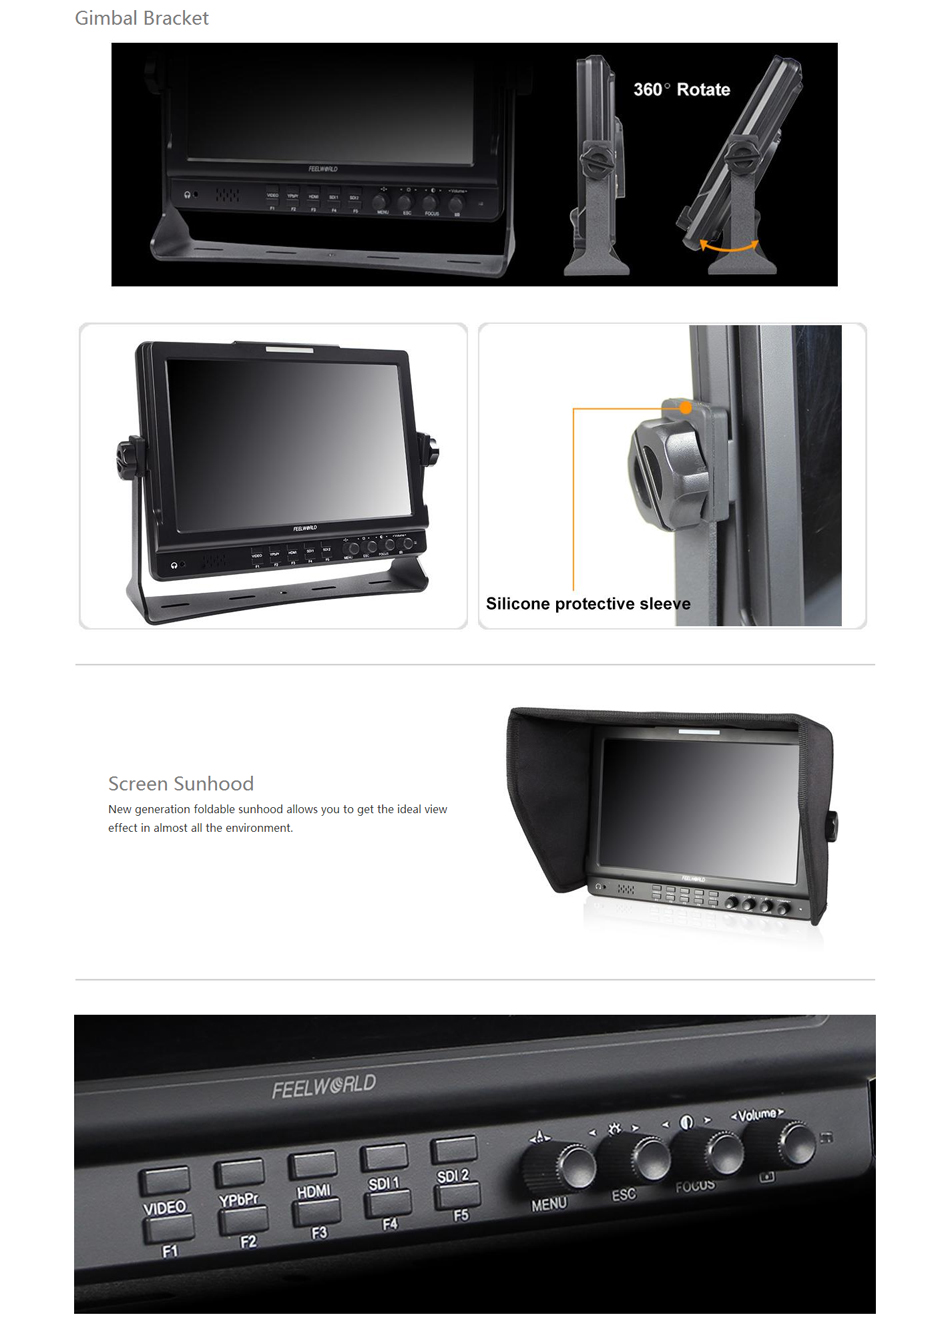 FEELWORLD FW1019 10.1 inch IPS 1280x800 Seamless Switch Dual 3G-SDI Camera-Top Monitor with Waveform Vectorscope Color Histogram